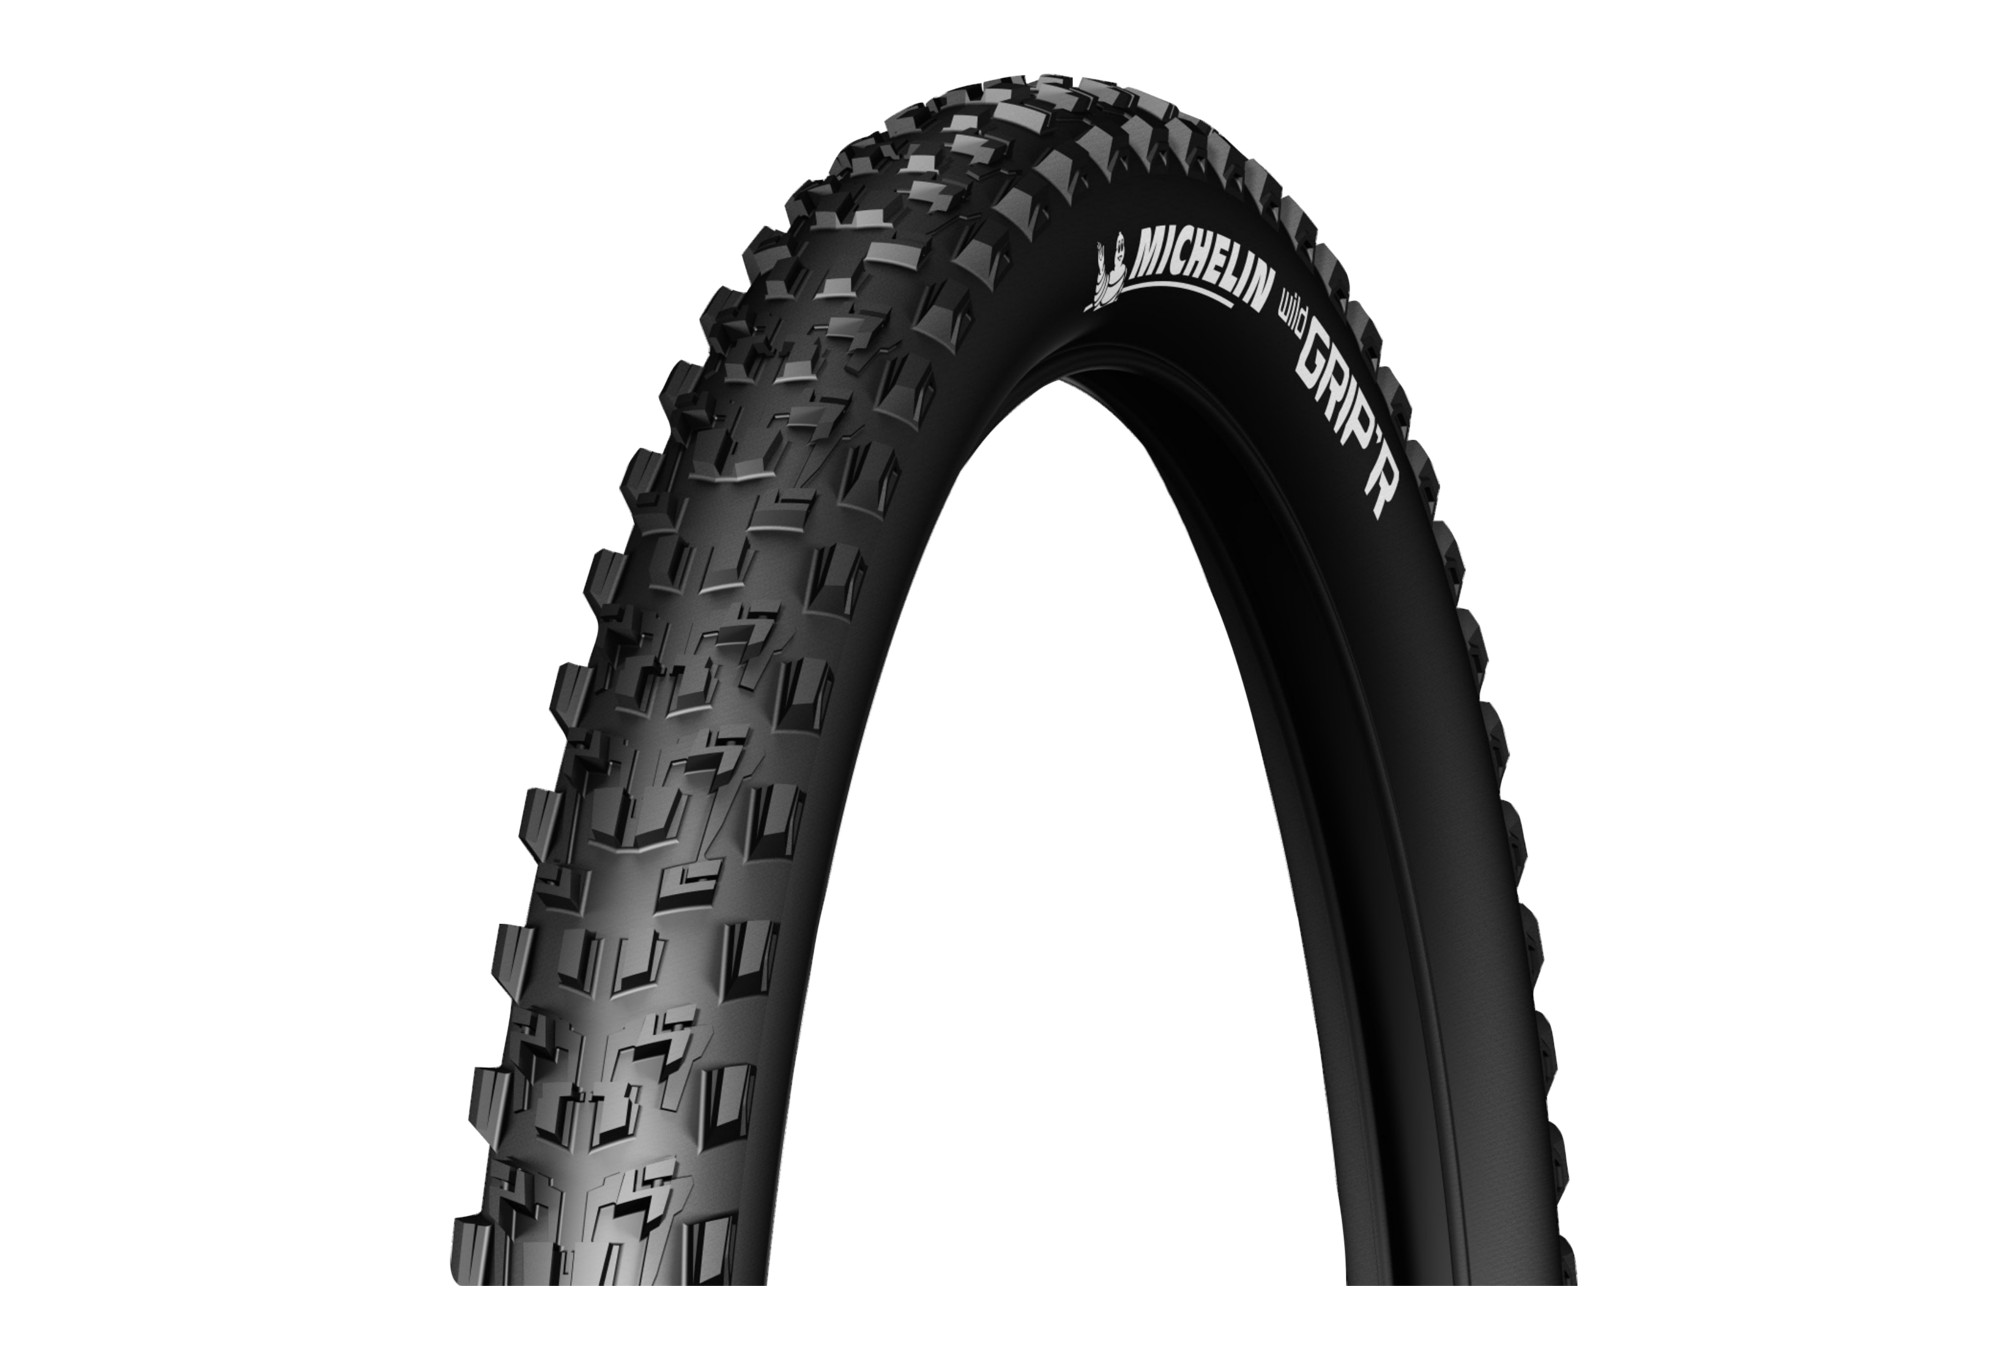 pneu enduro michelin wild grip r advanced reinforced tubeless ready tringle souple. Black Bedroom Furniture Sets. Home Design Ideas